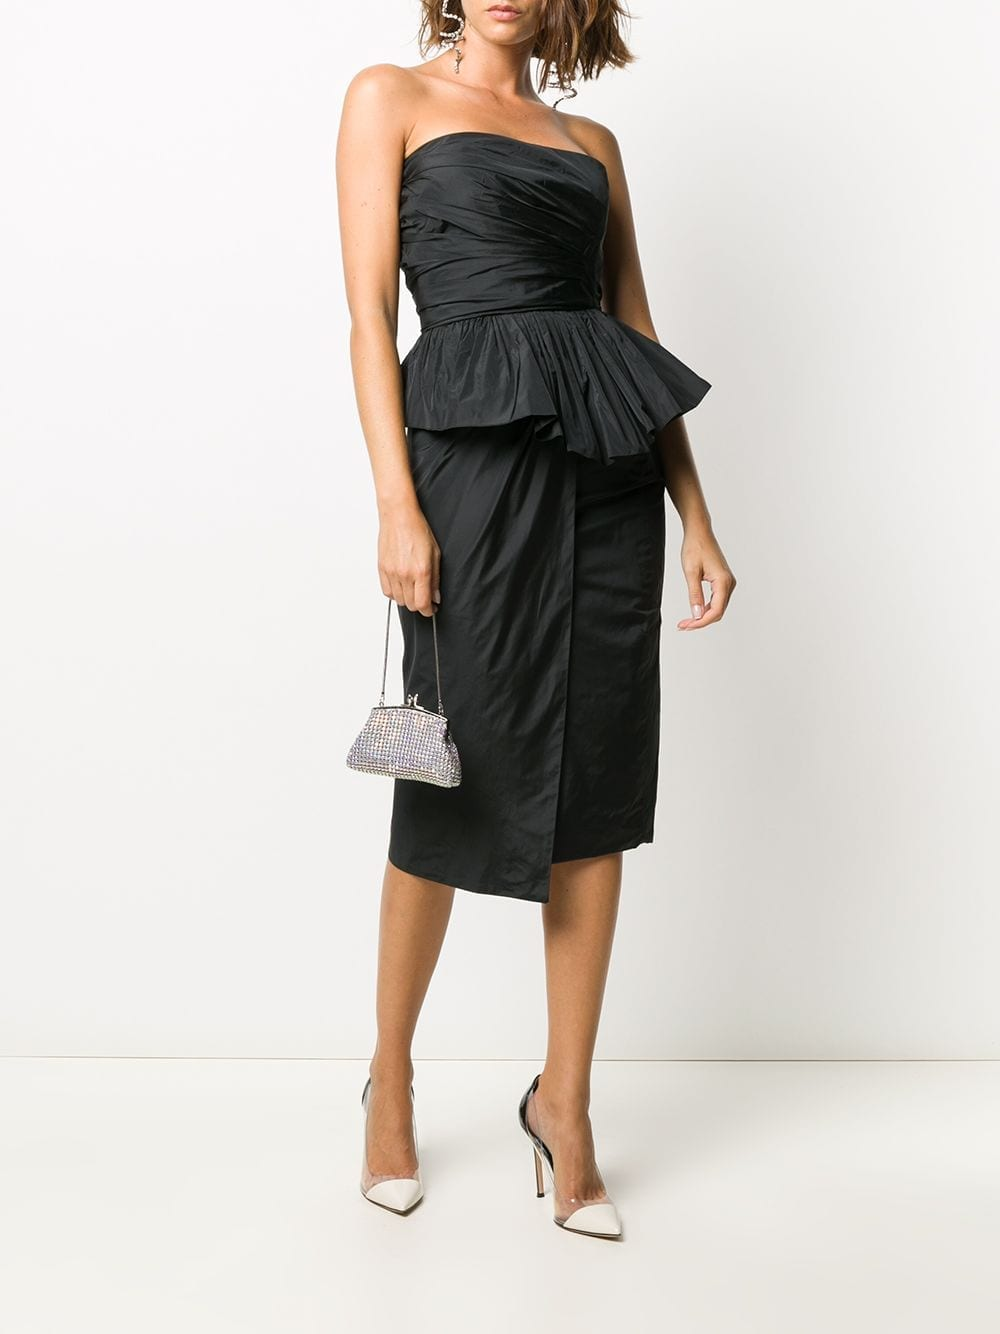 MAX MARA PIANOFORTE Elegnate Matteo Strapless Dress